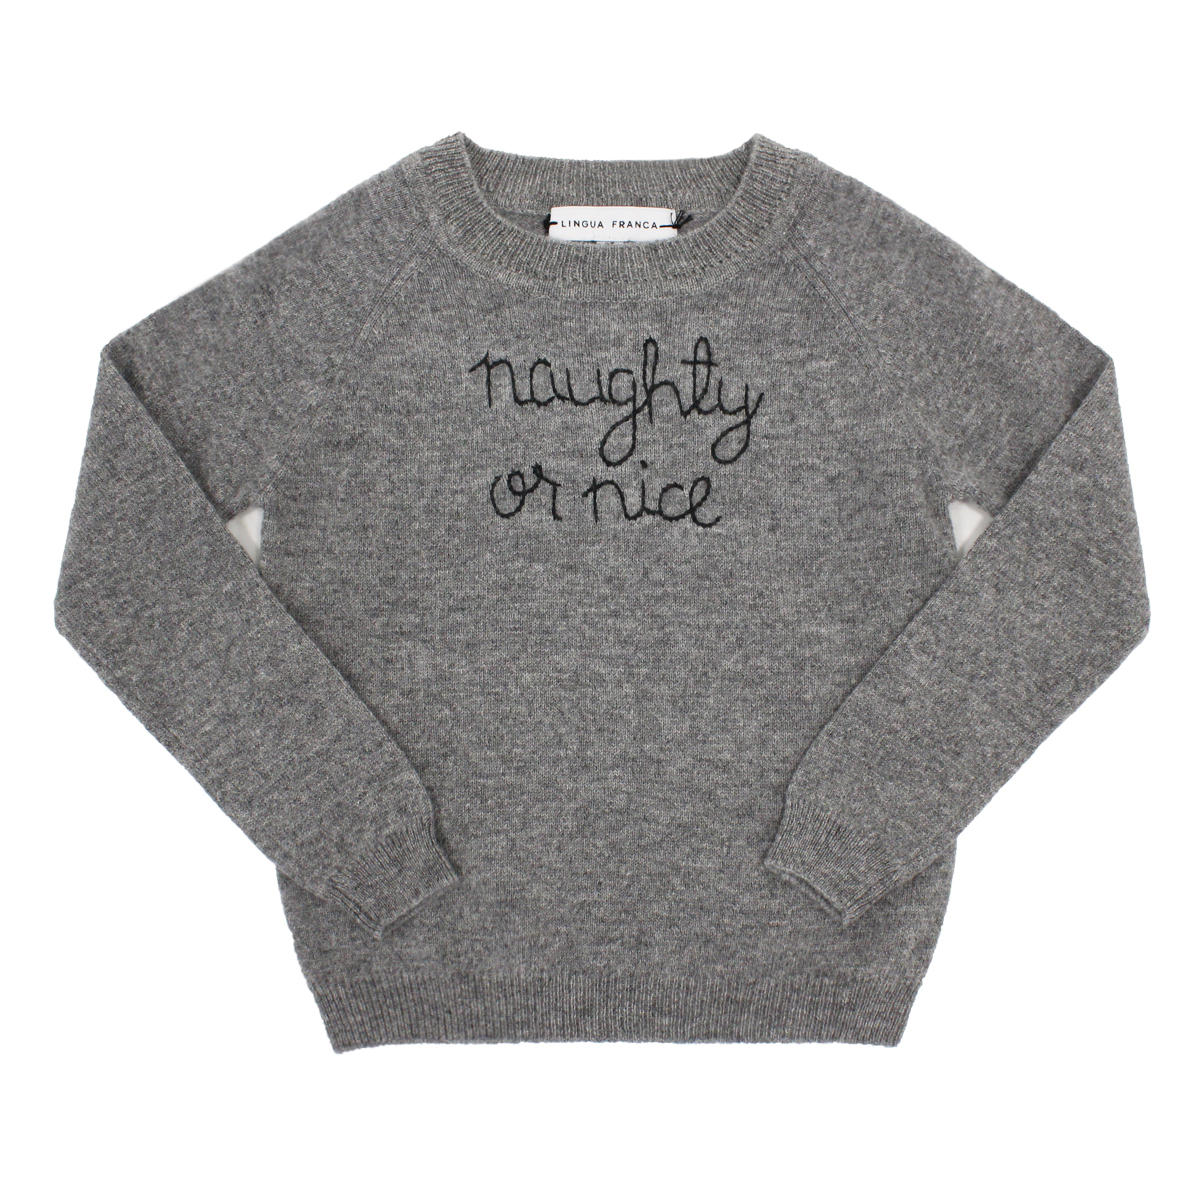 Lingua Franca Kid's Cashmere Sweater in Grey w/ Naughty or Nice embroidery